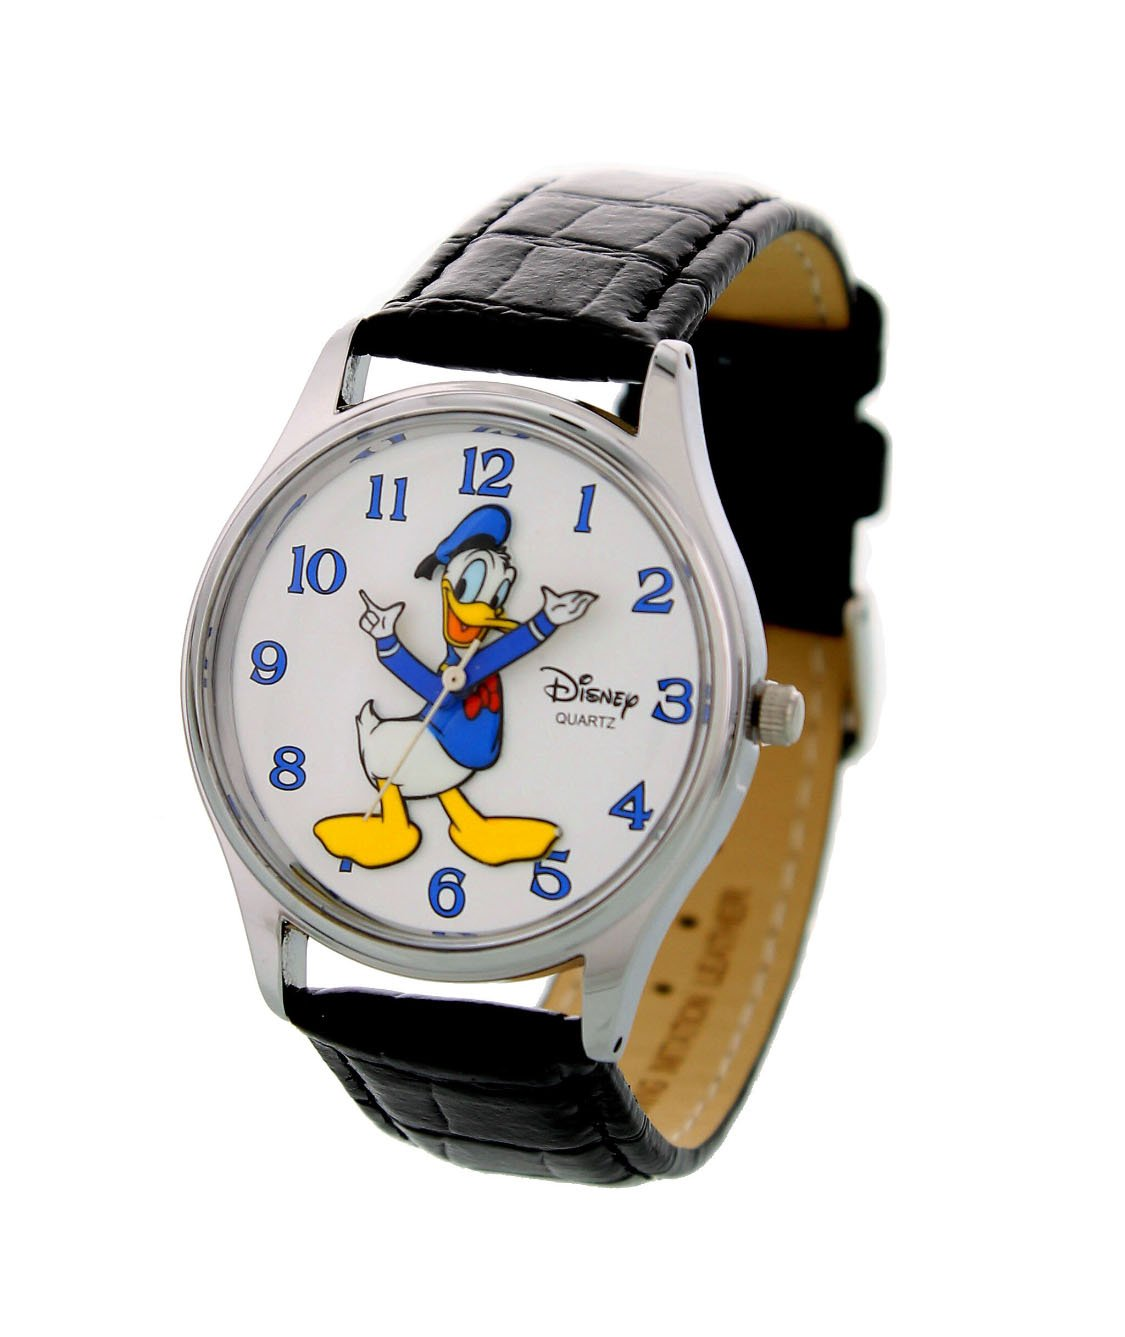 Top 10 Best Disney Watches (2020 Reviews & Buying Guide) 3